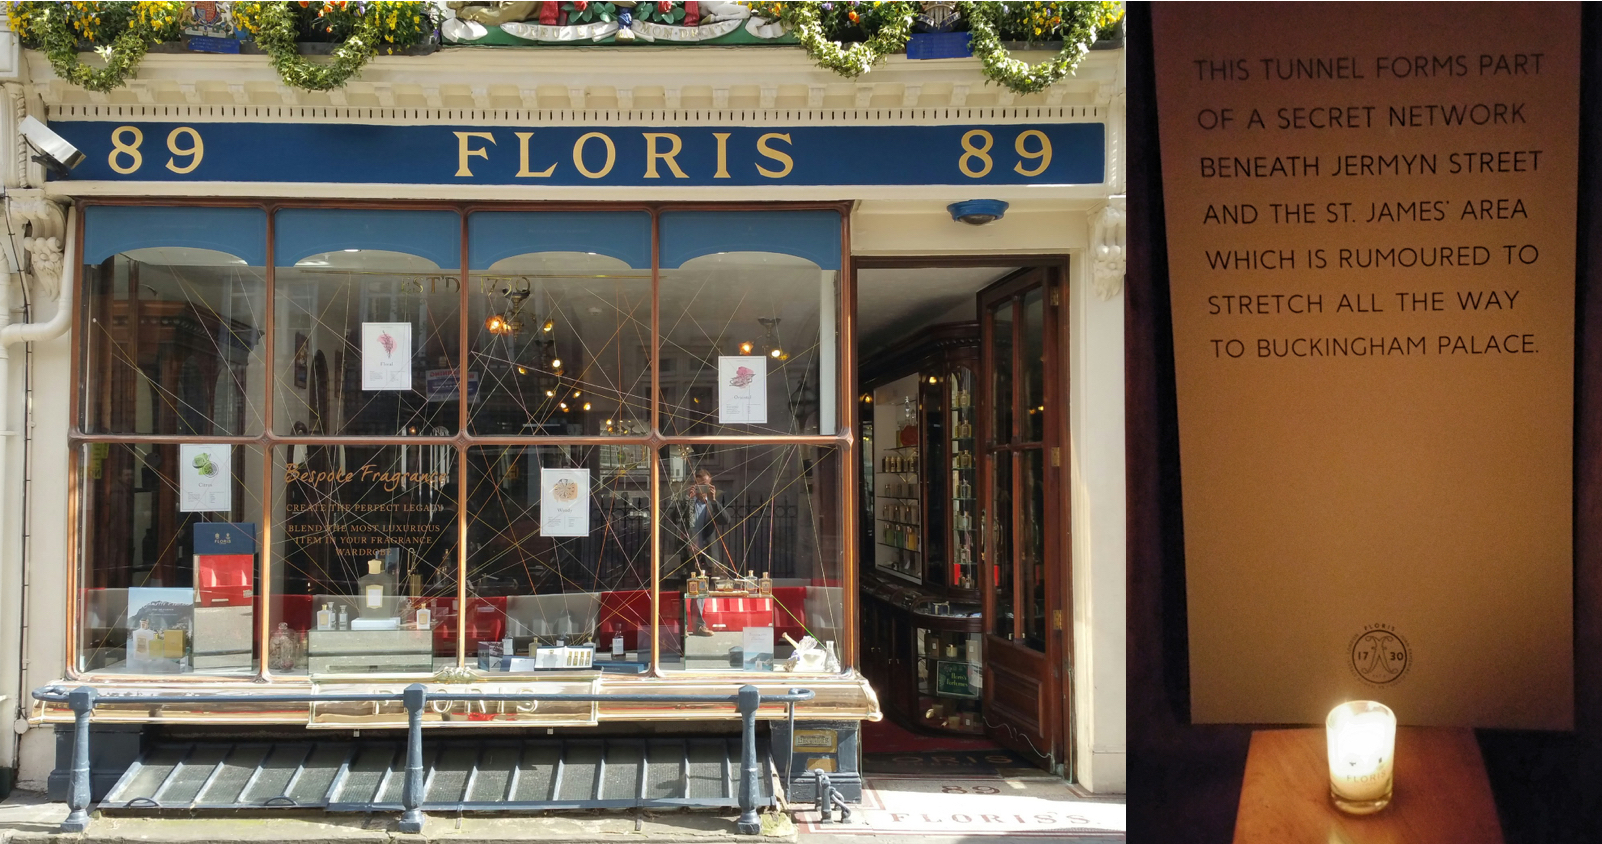 Floris, the perfumer, in London